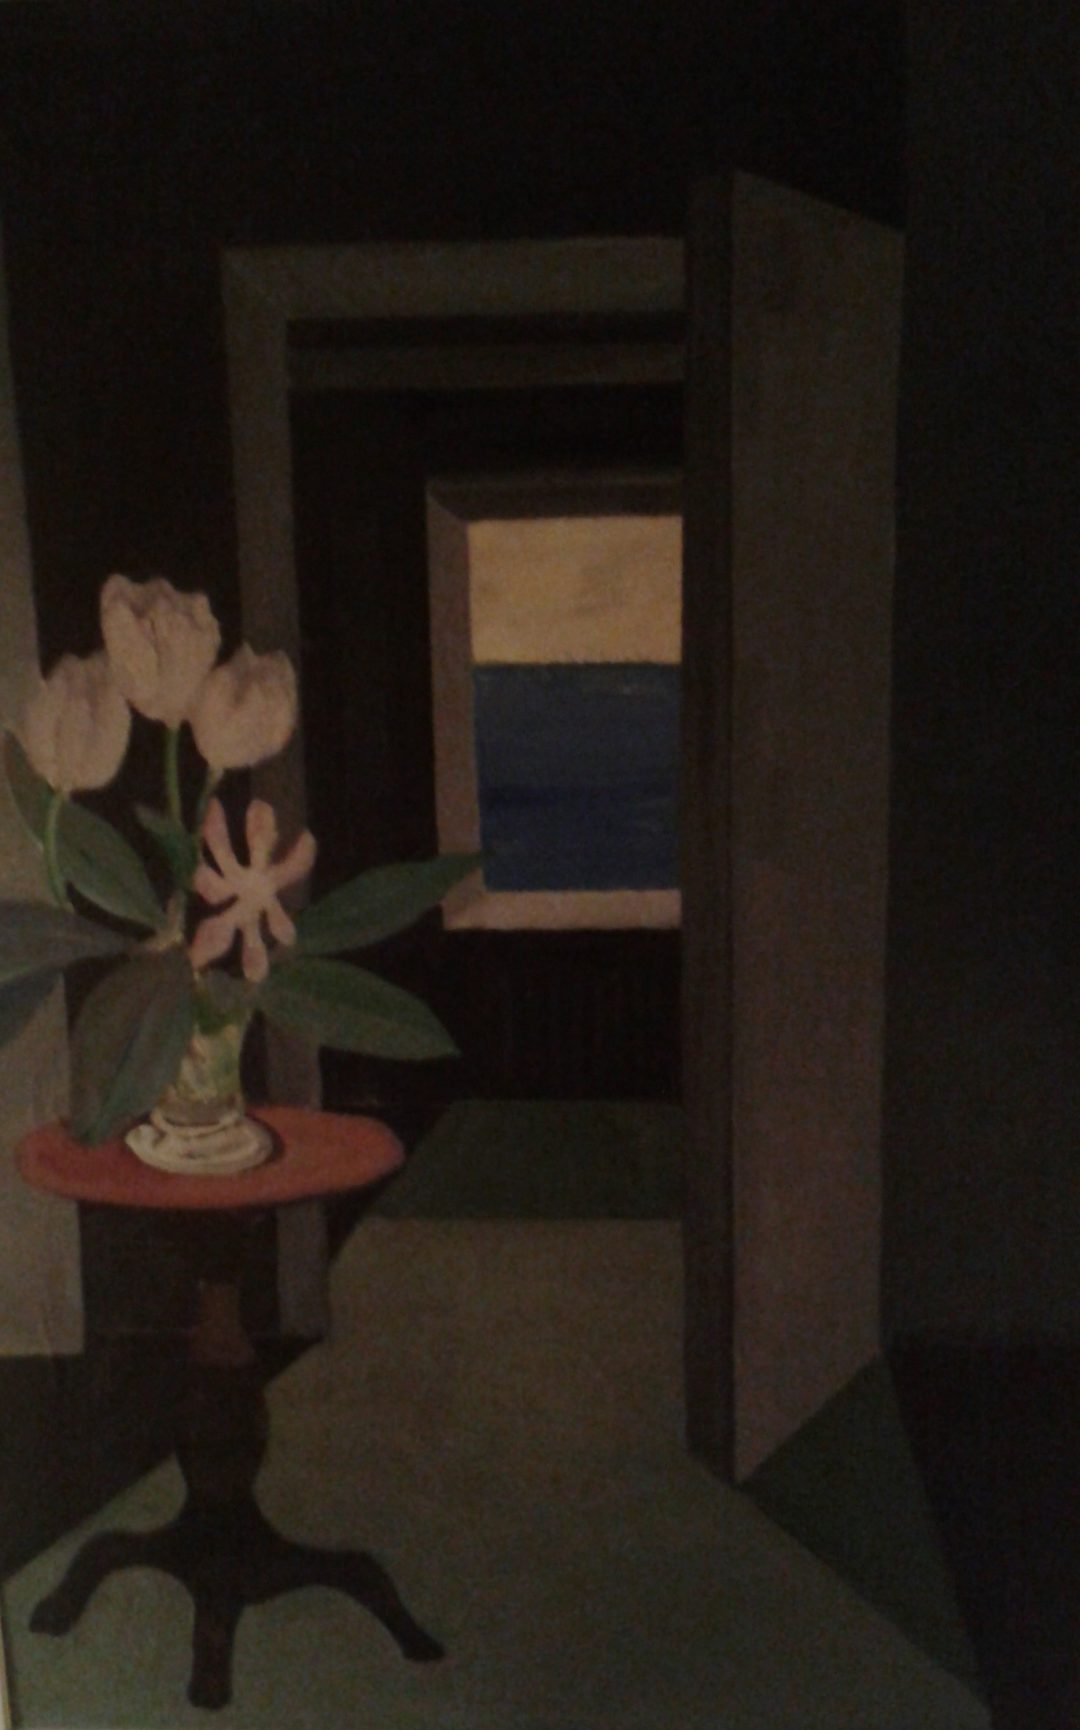 Still life in dark room